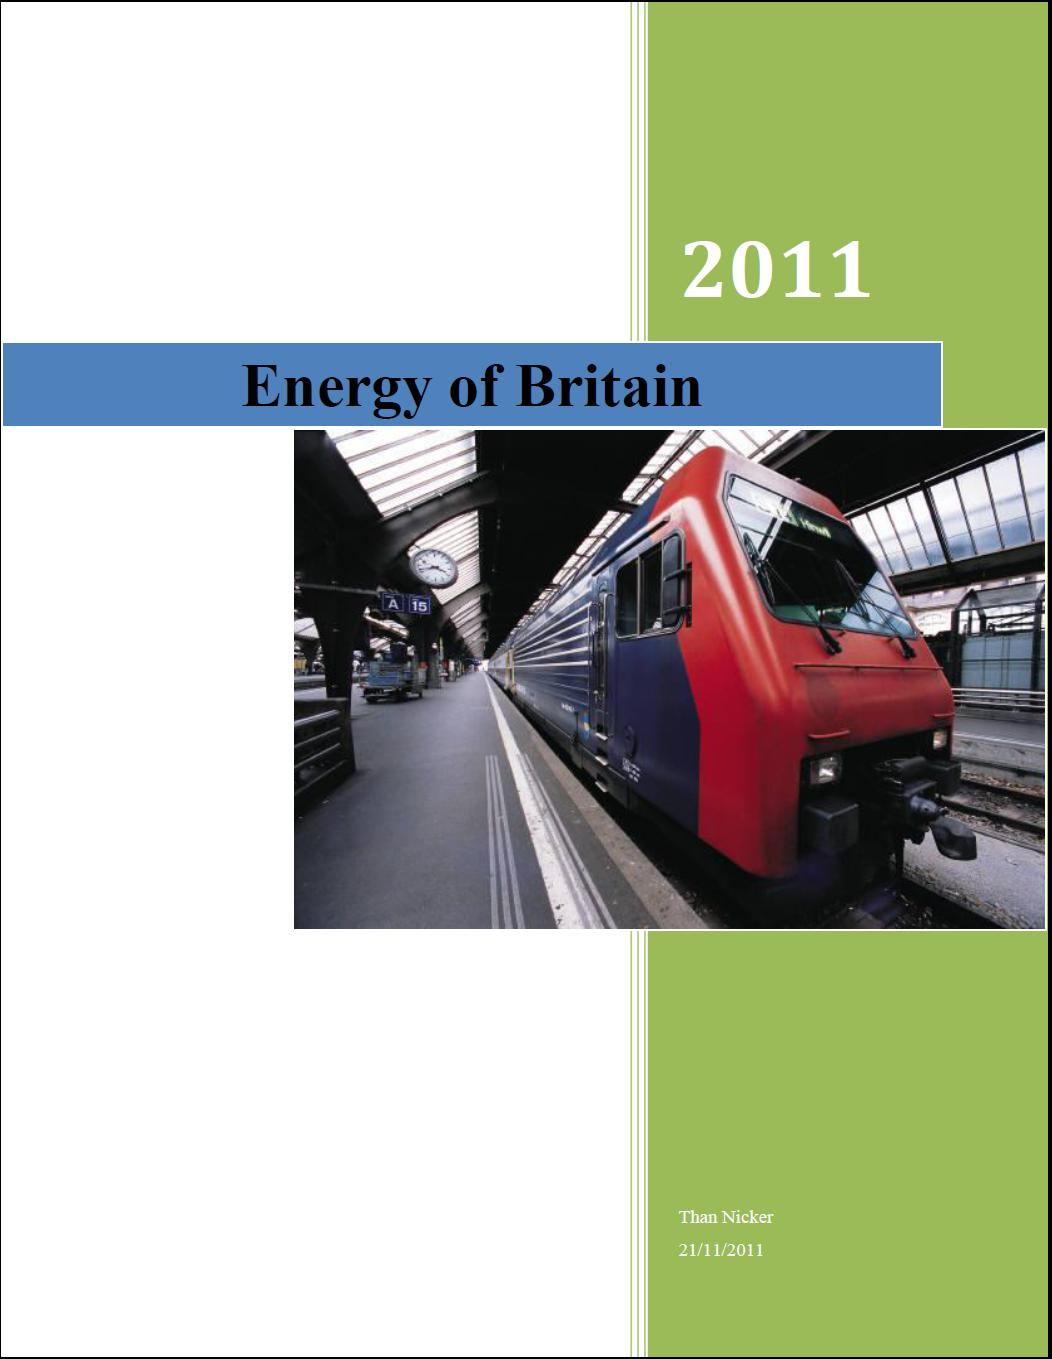 Energy of Britain